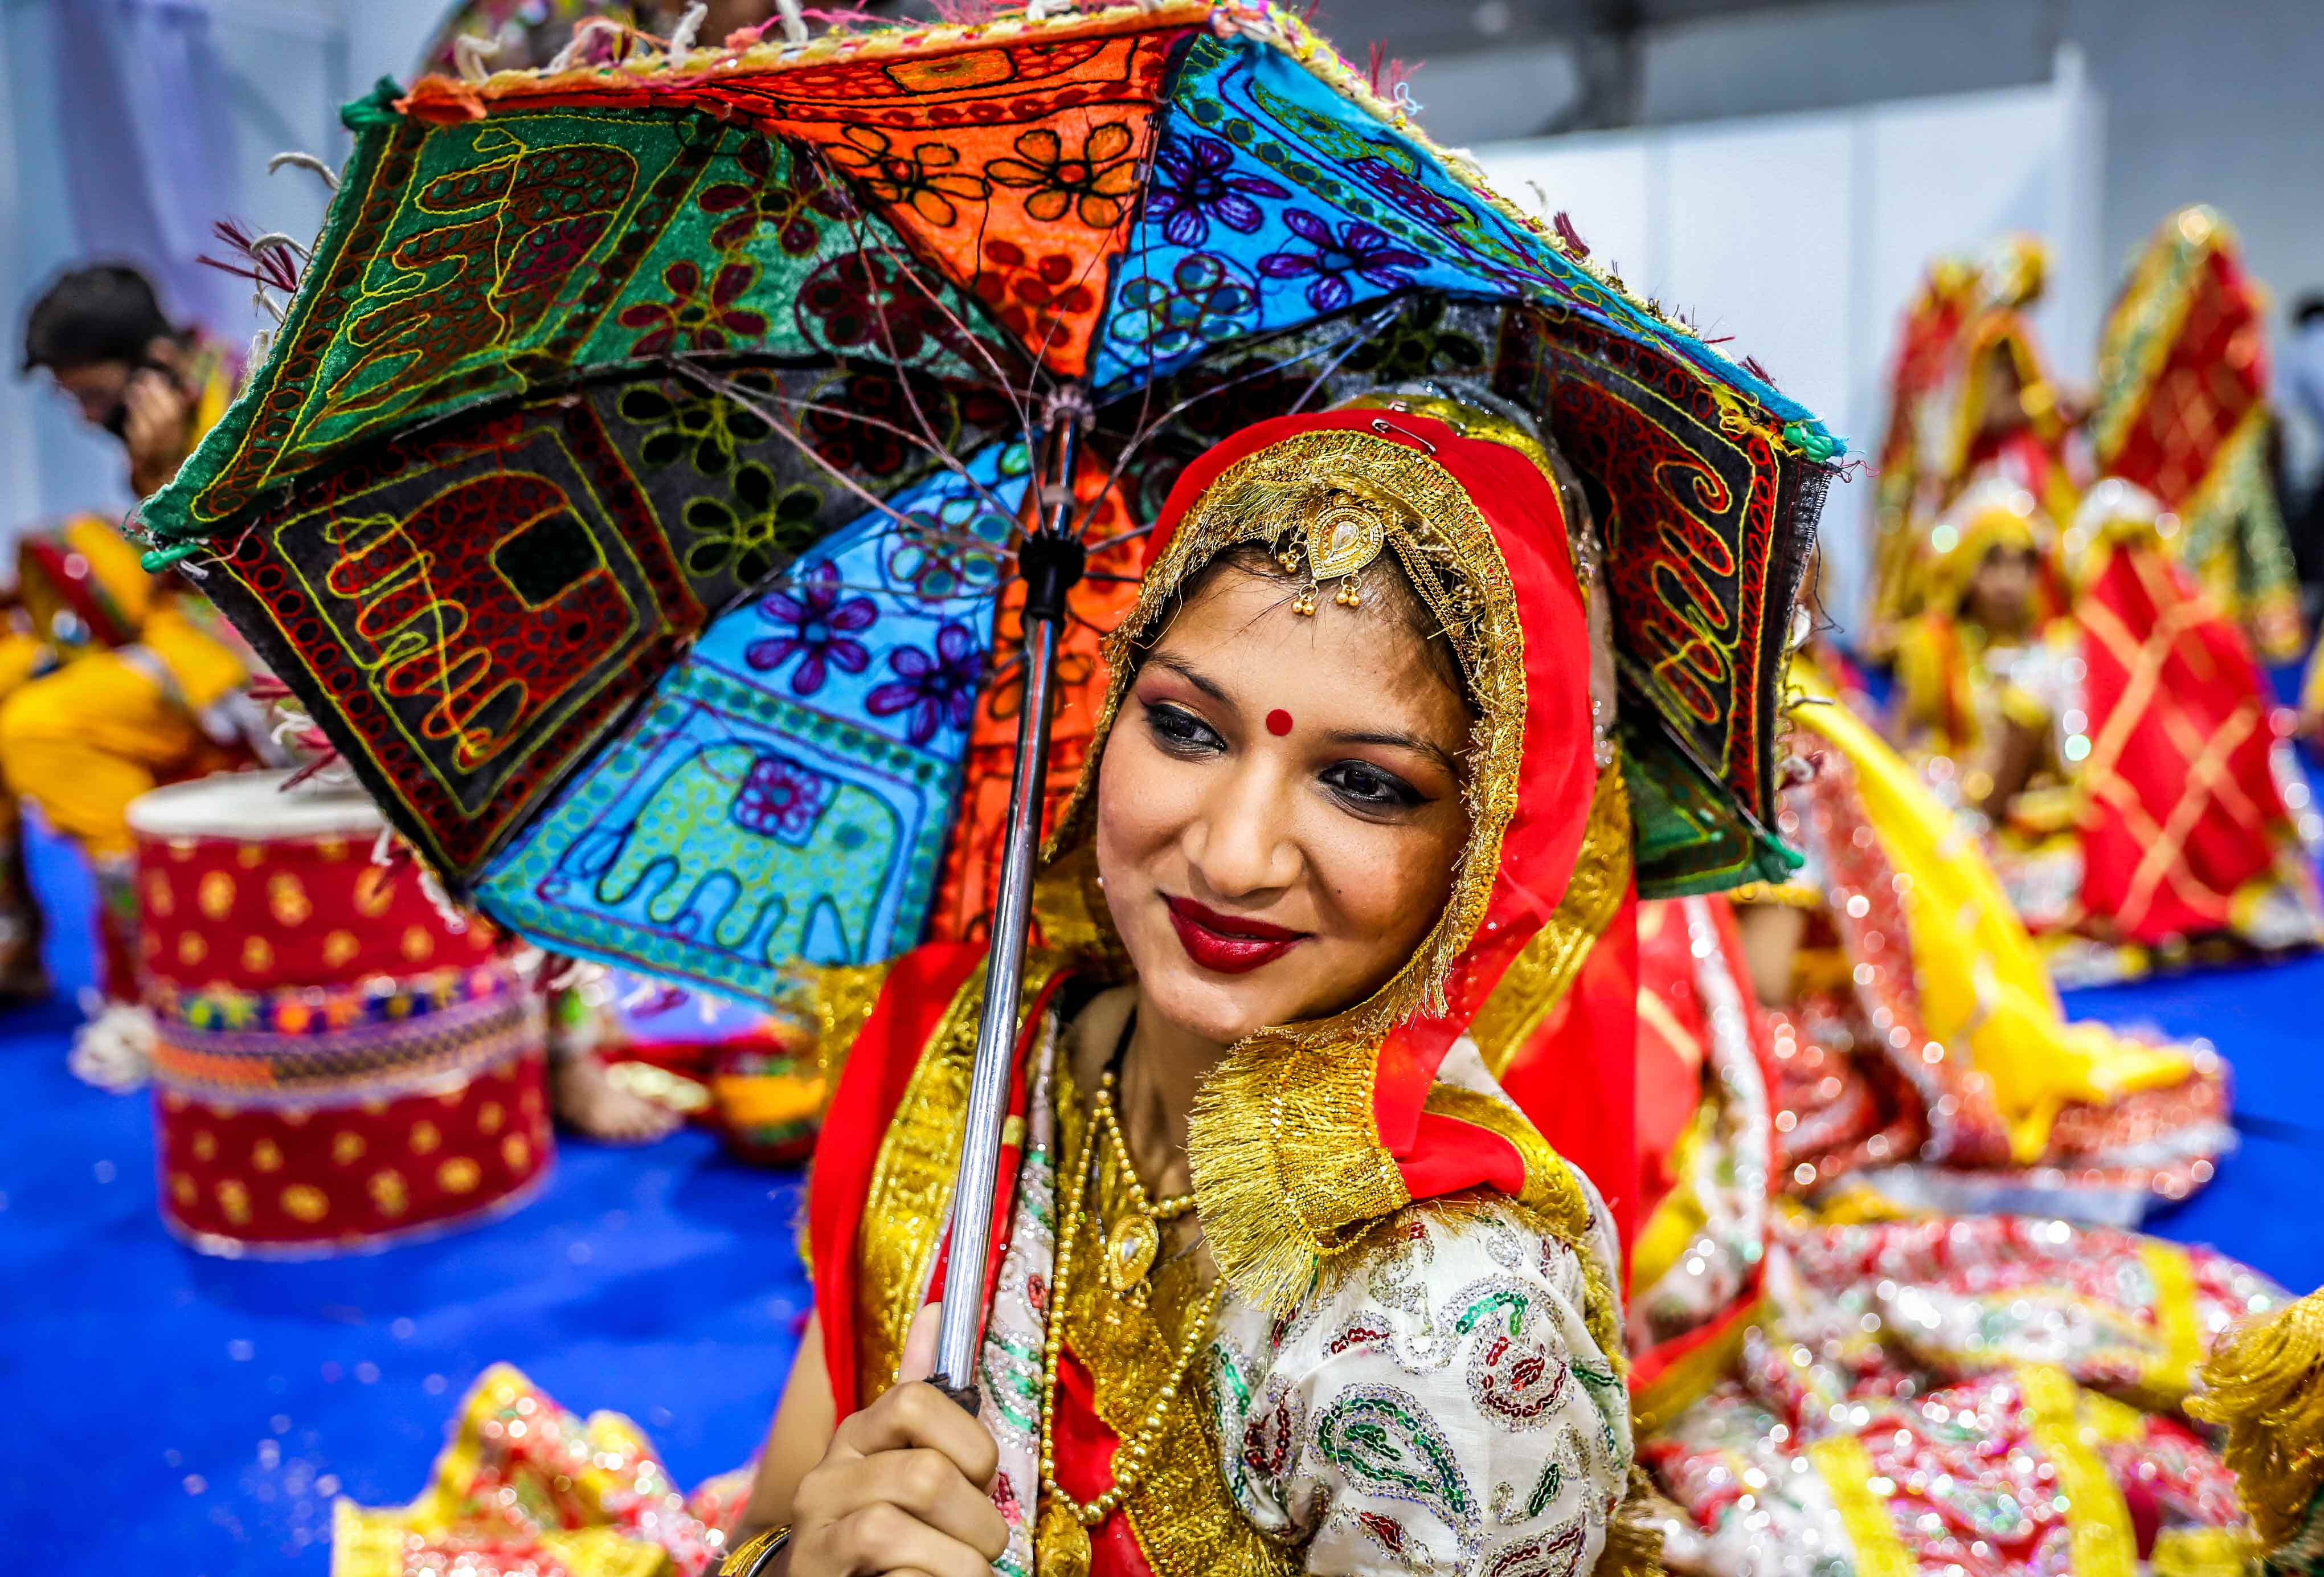 Navratri celebrations in Gujarat